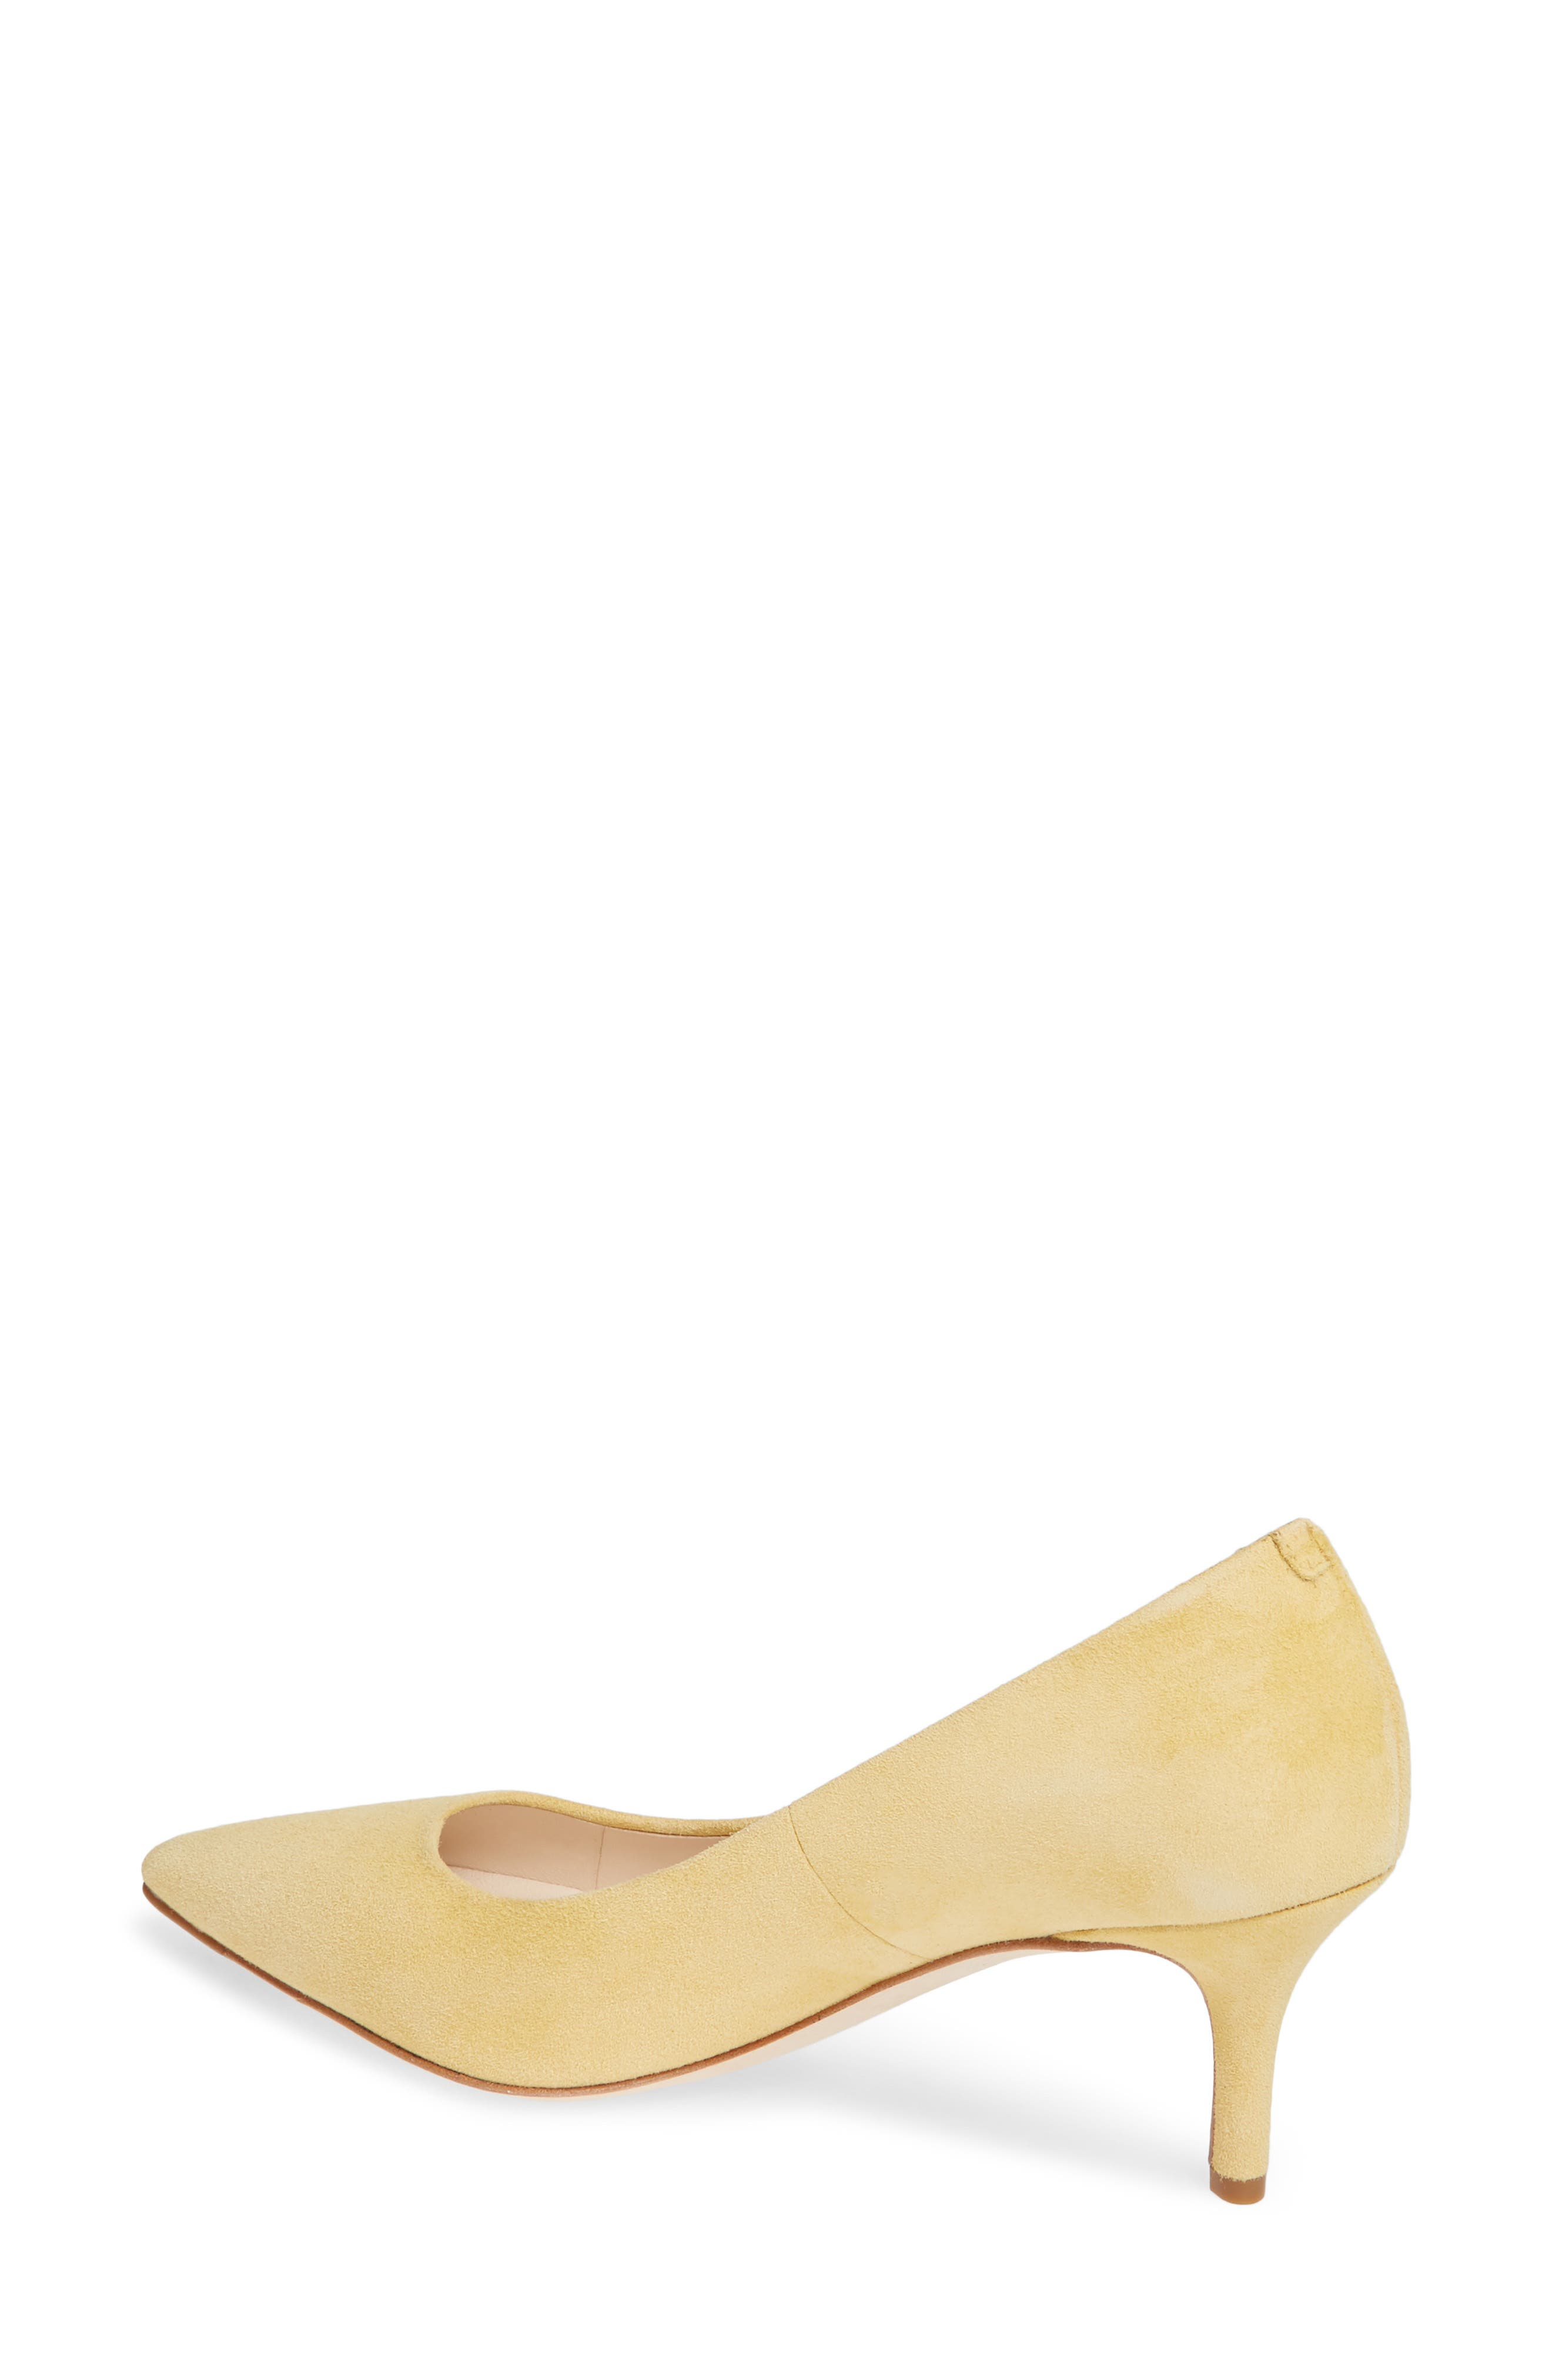 COLE HAAN,                             Vesta Pointy Toe Pump,                             Alternate thumbnail 2, color,                             SUNSET GOLD SUEDE